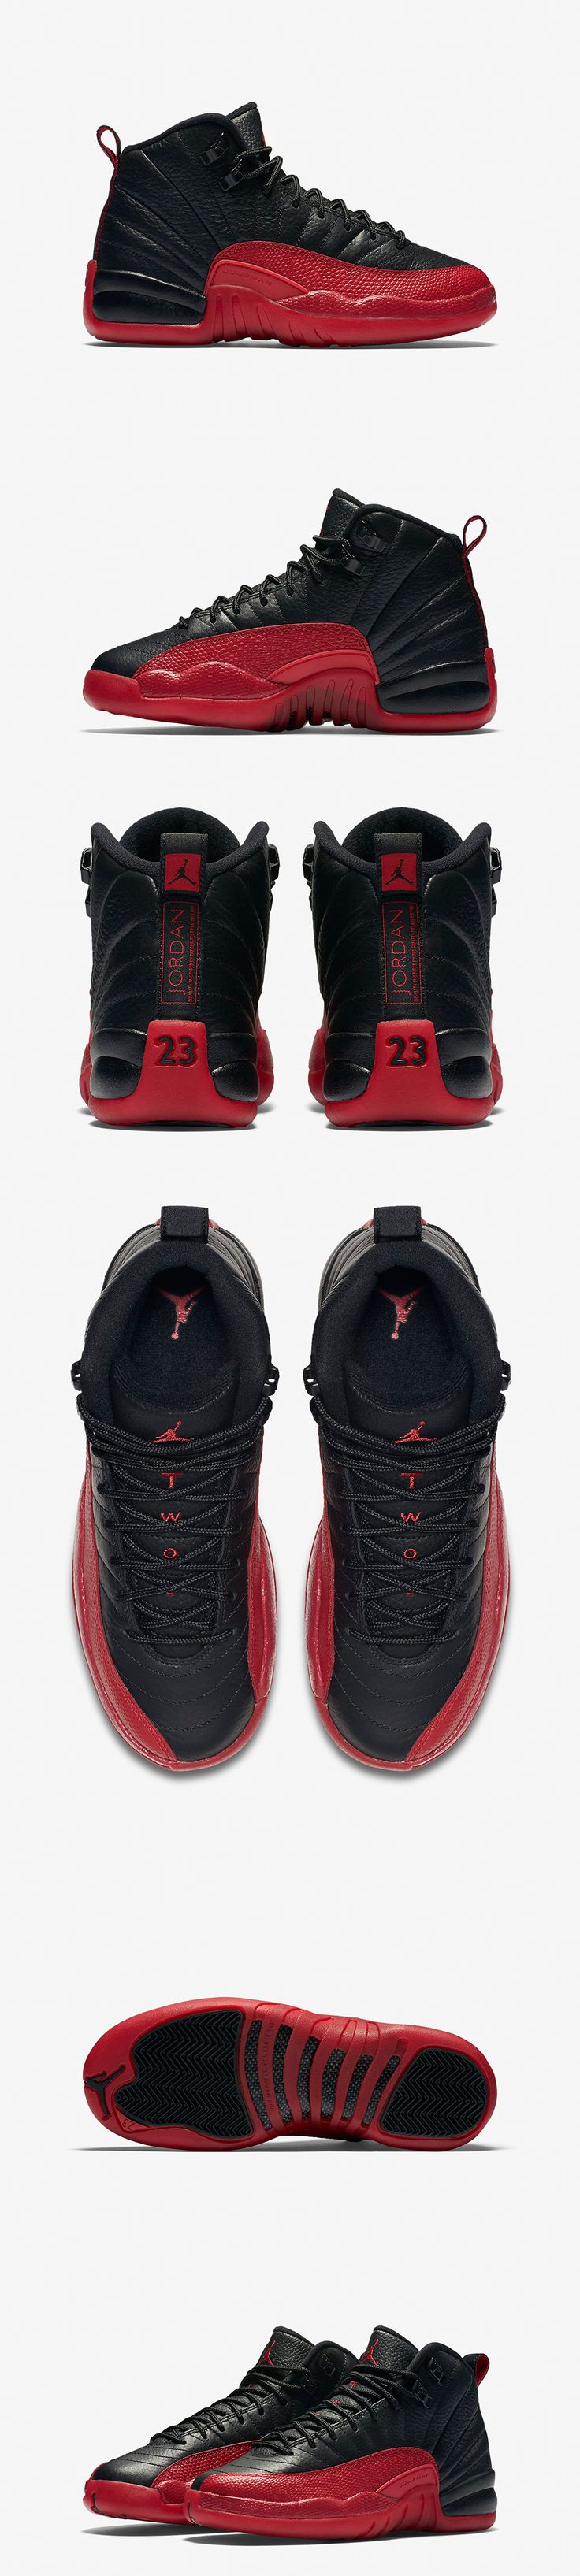 "Kids' Air Jordan 12 Retro ""Flu Game"" (Black/Varsity Red) - EU Kicks: Sneaker Magazine"